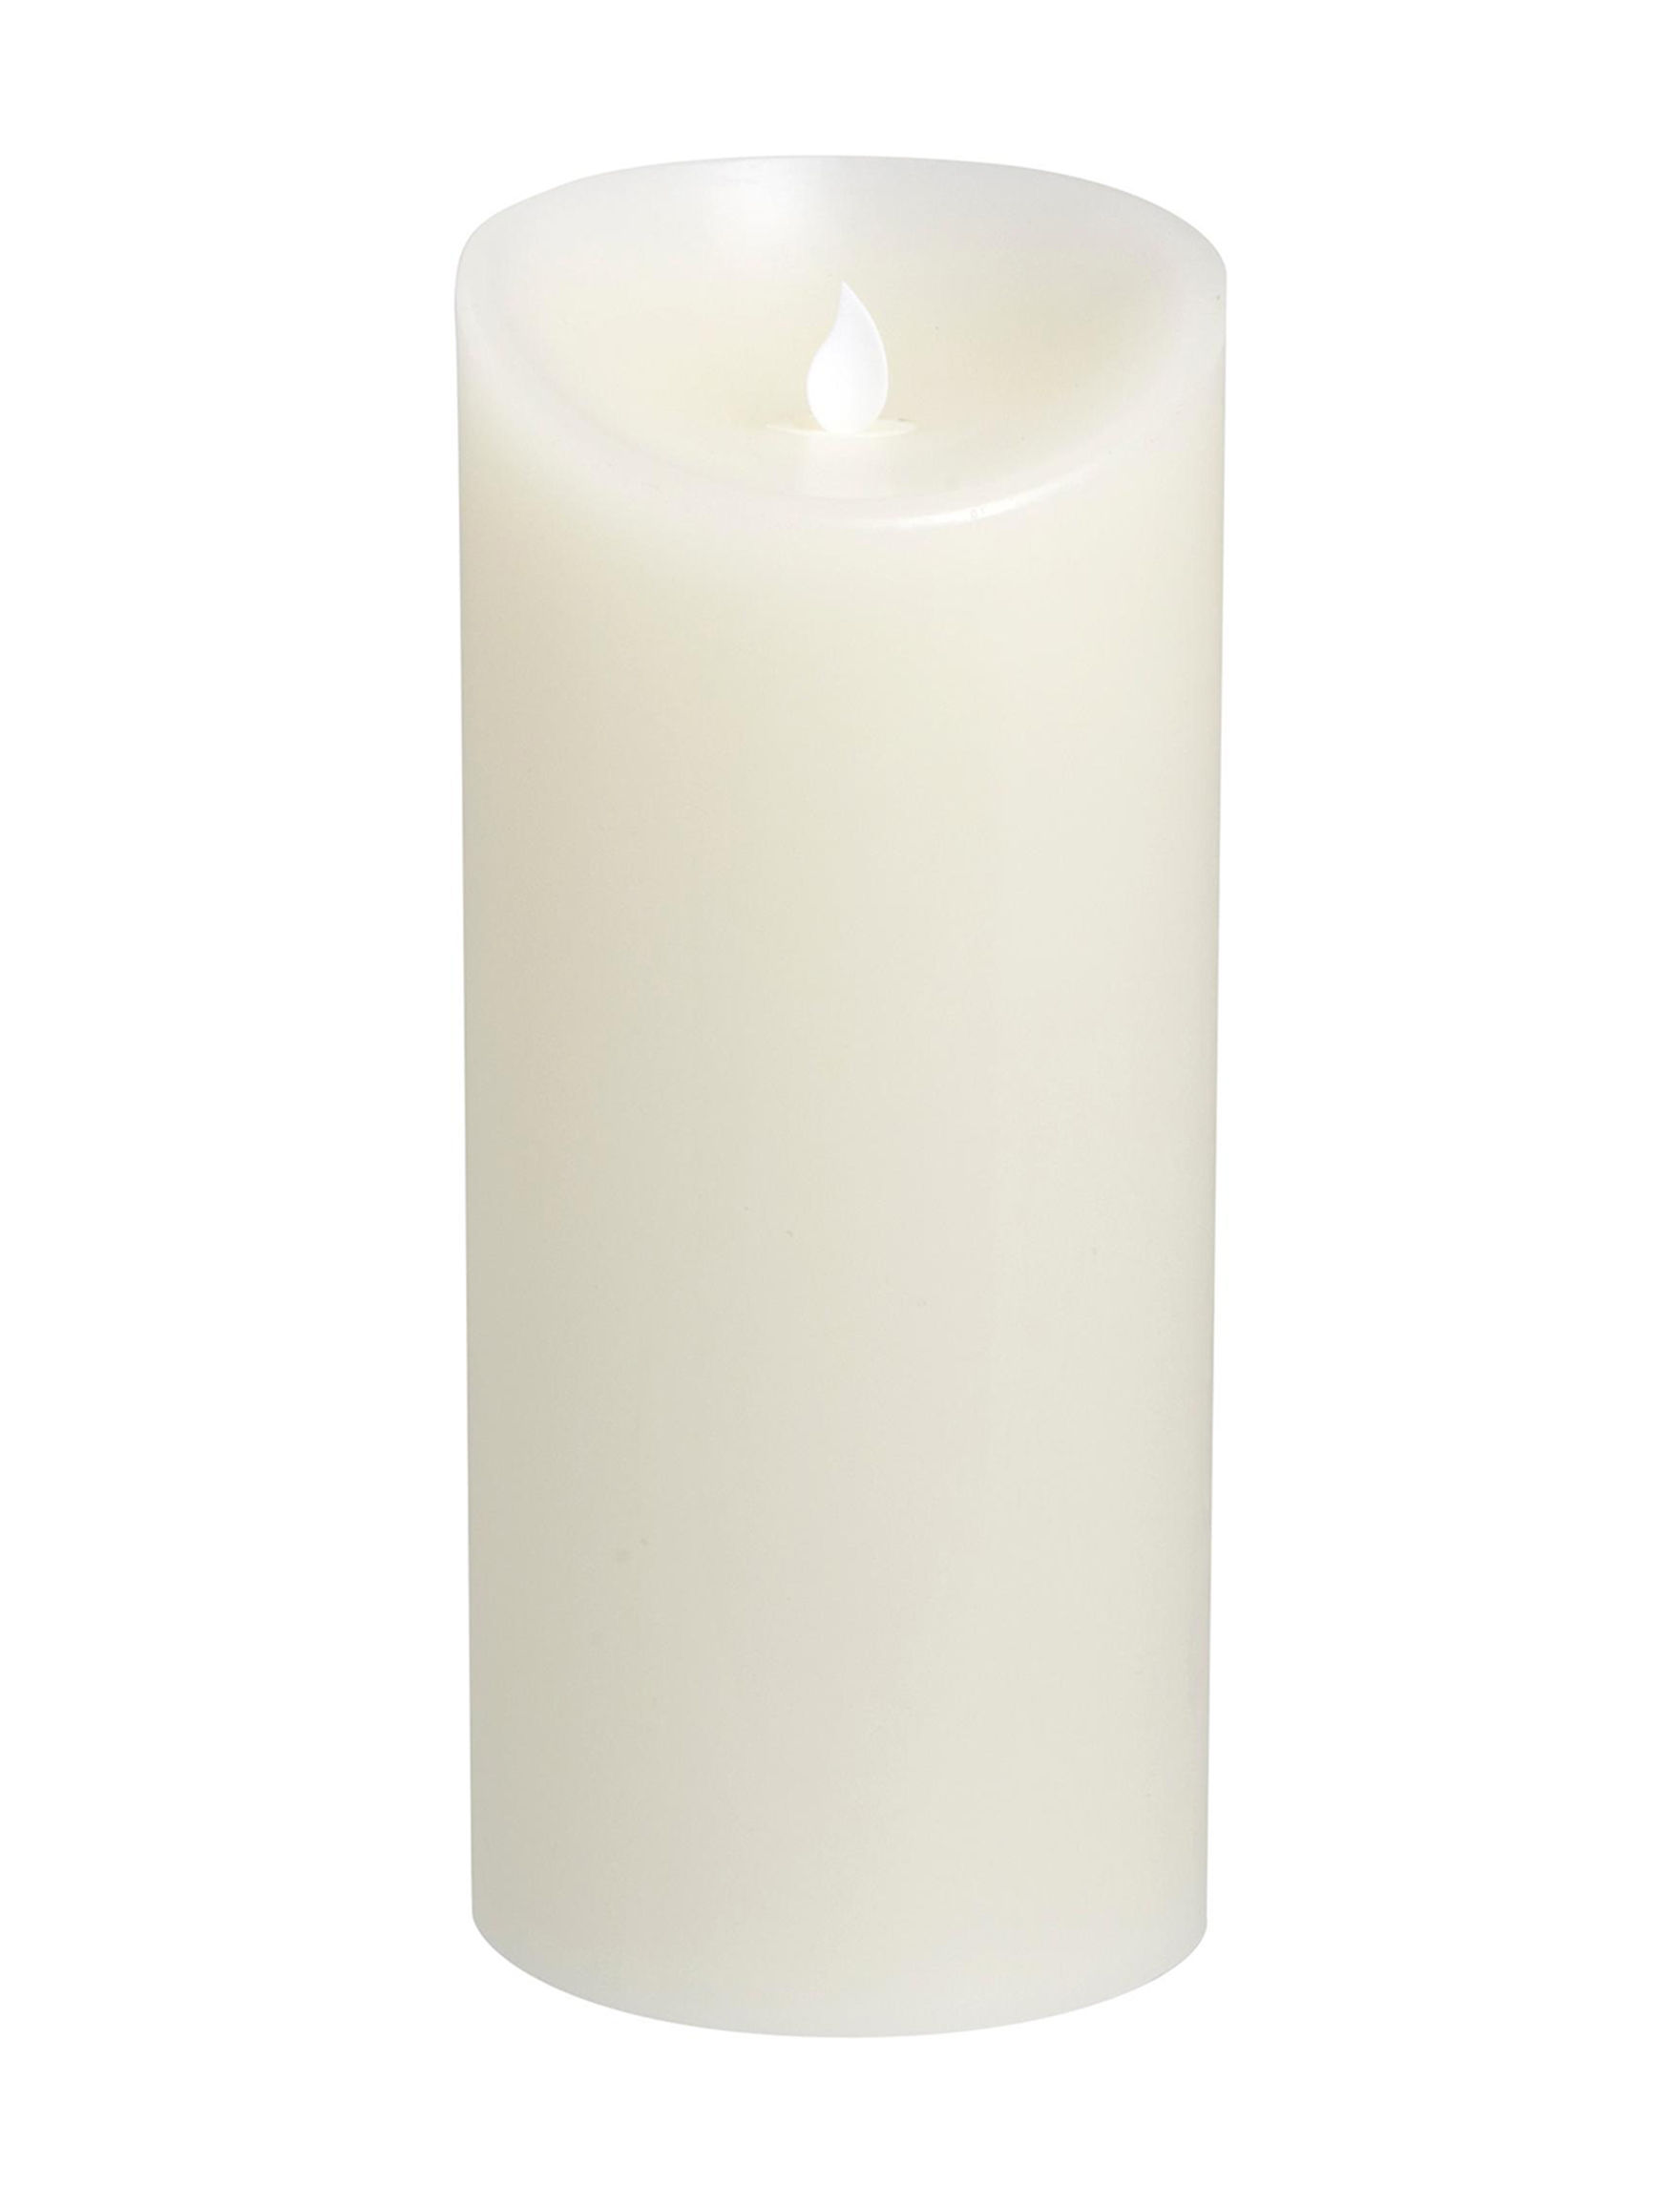 Apothecary White Flameless Candles & Diffusers